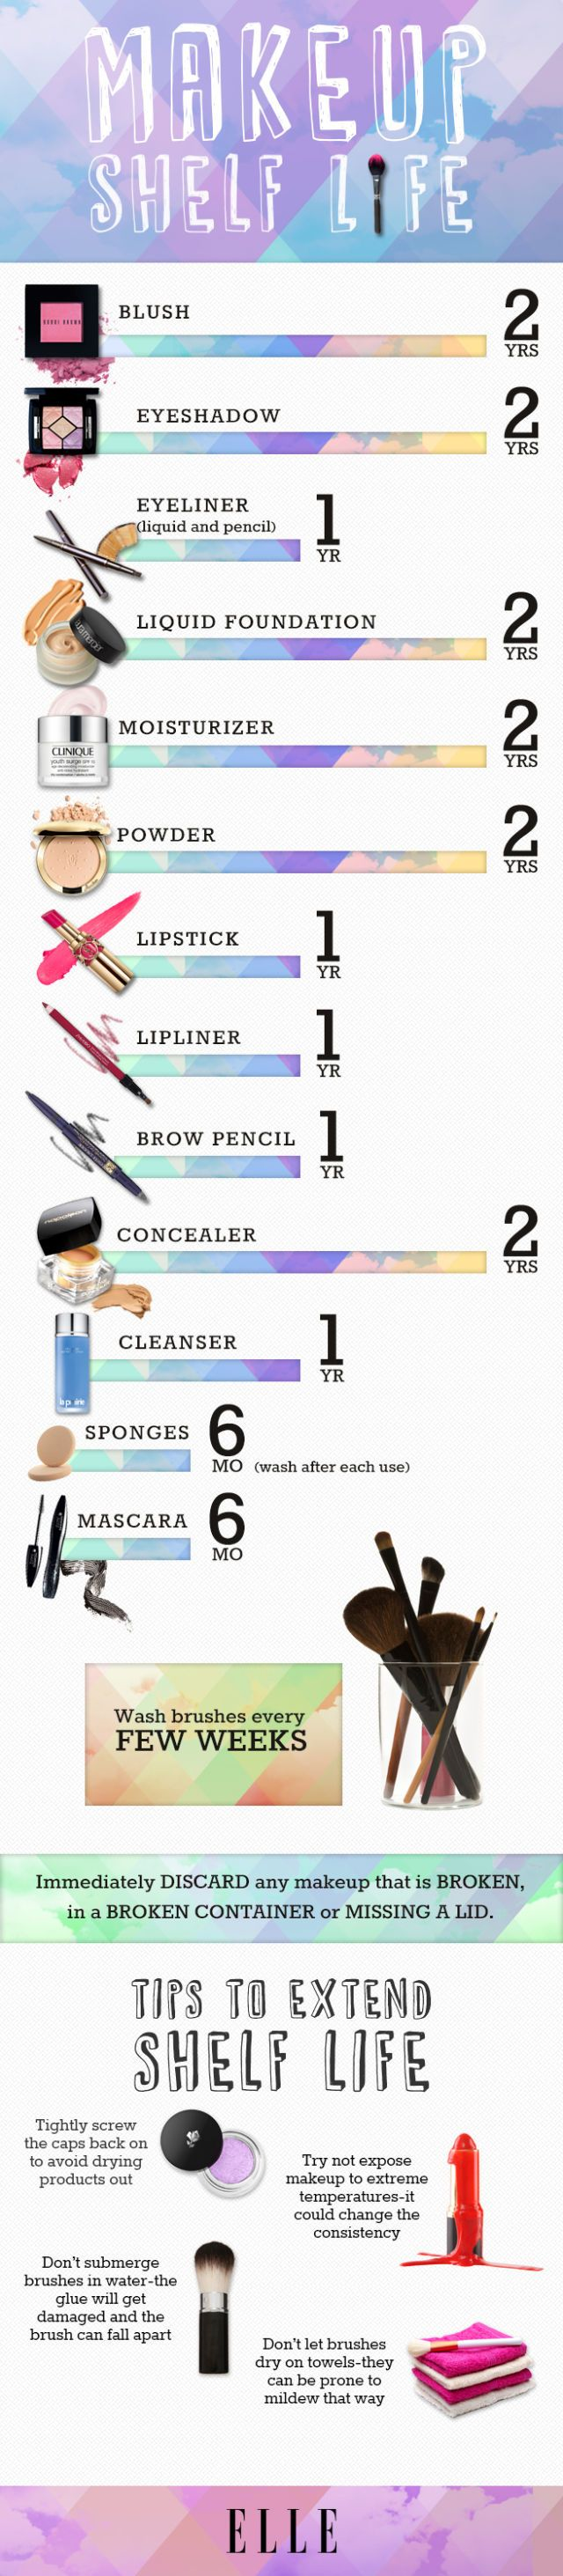 When Should You Throw Out Your Makeup? Bobbi Brown Breaks It Down  - ELLE.com